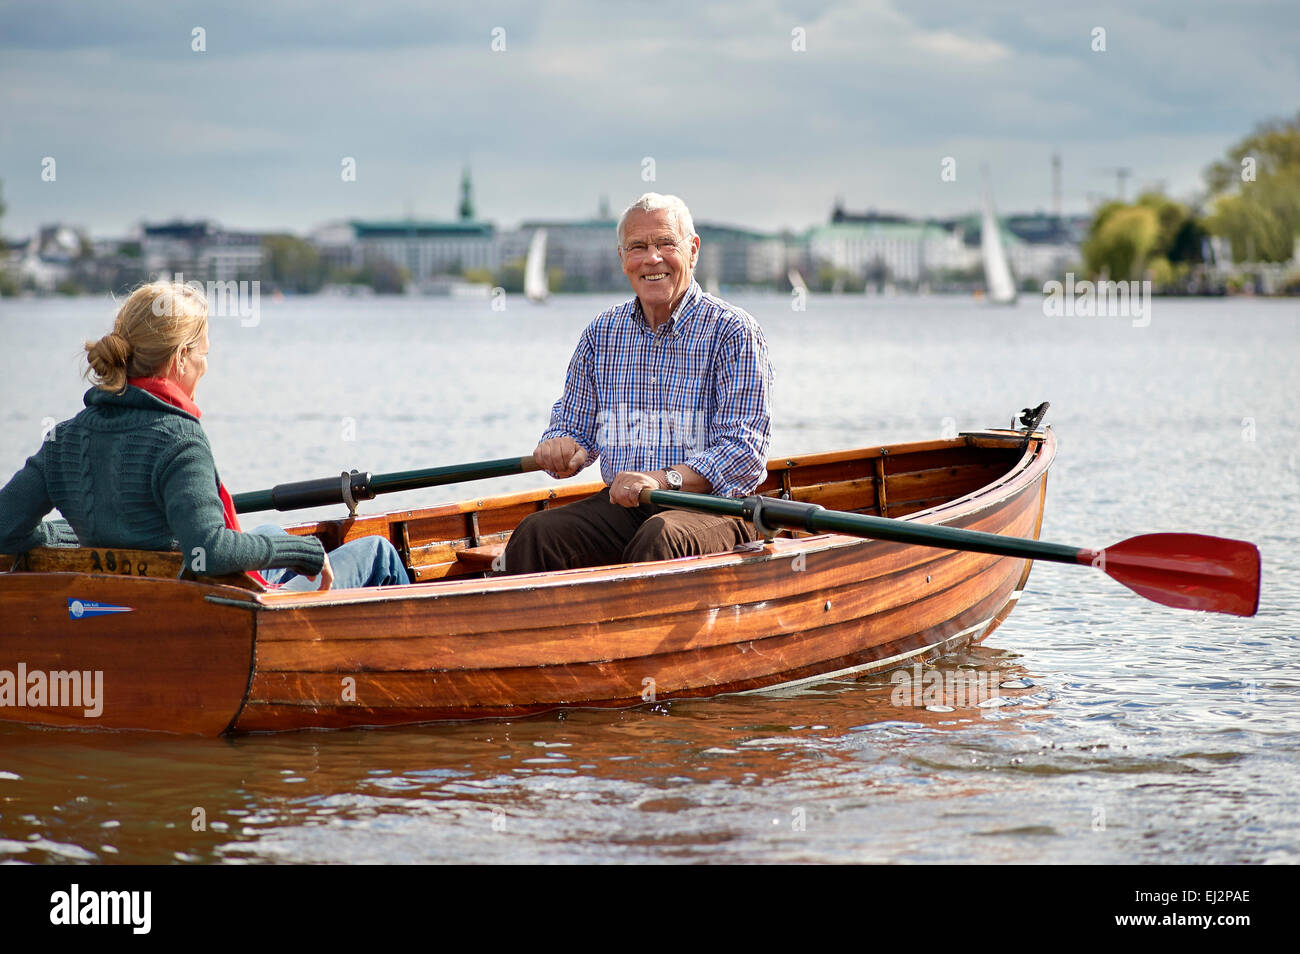 Senior and his daughter riding on a rawboat - Stock Image